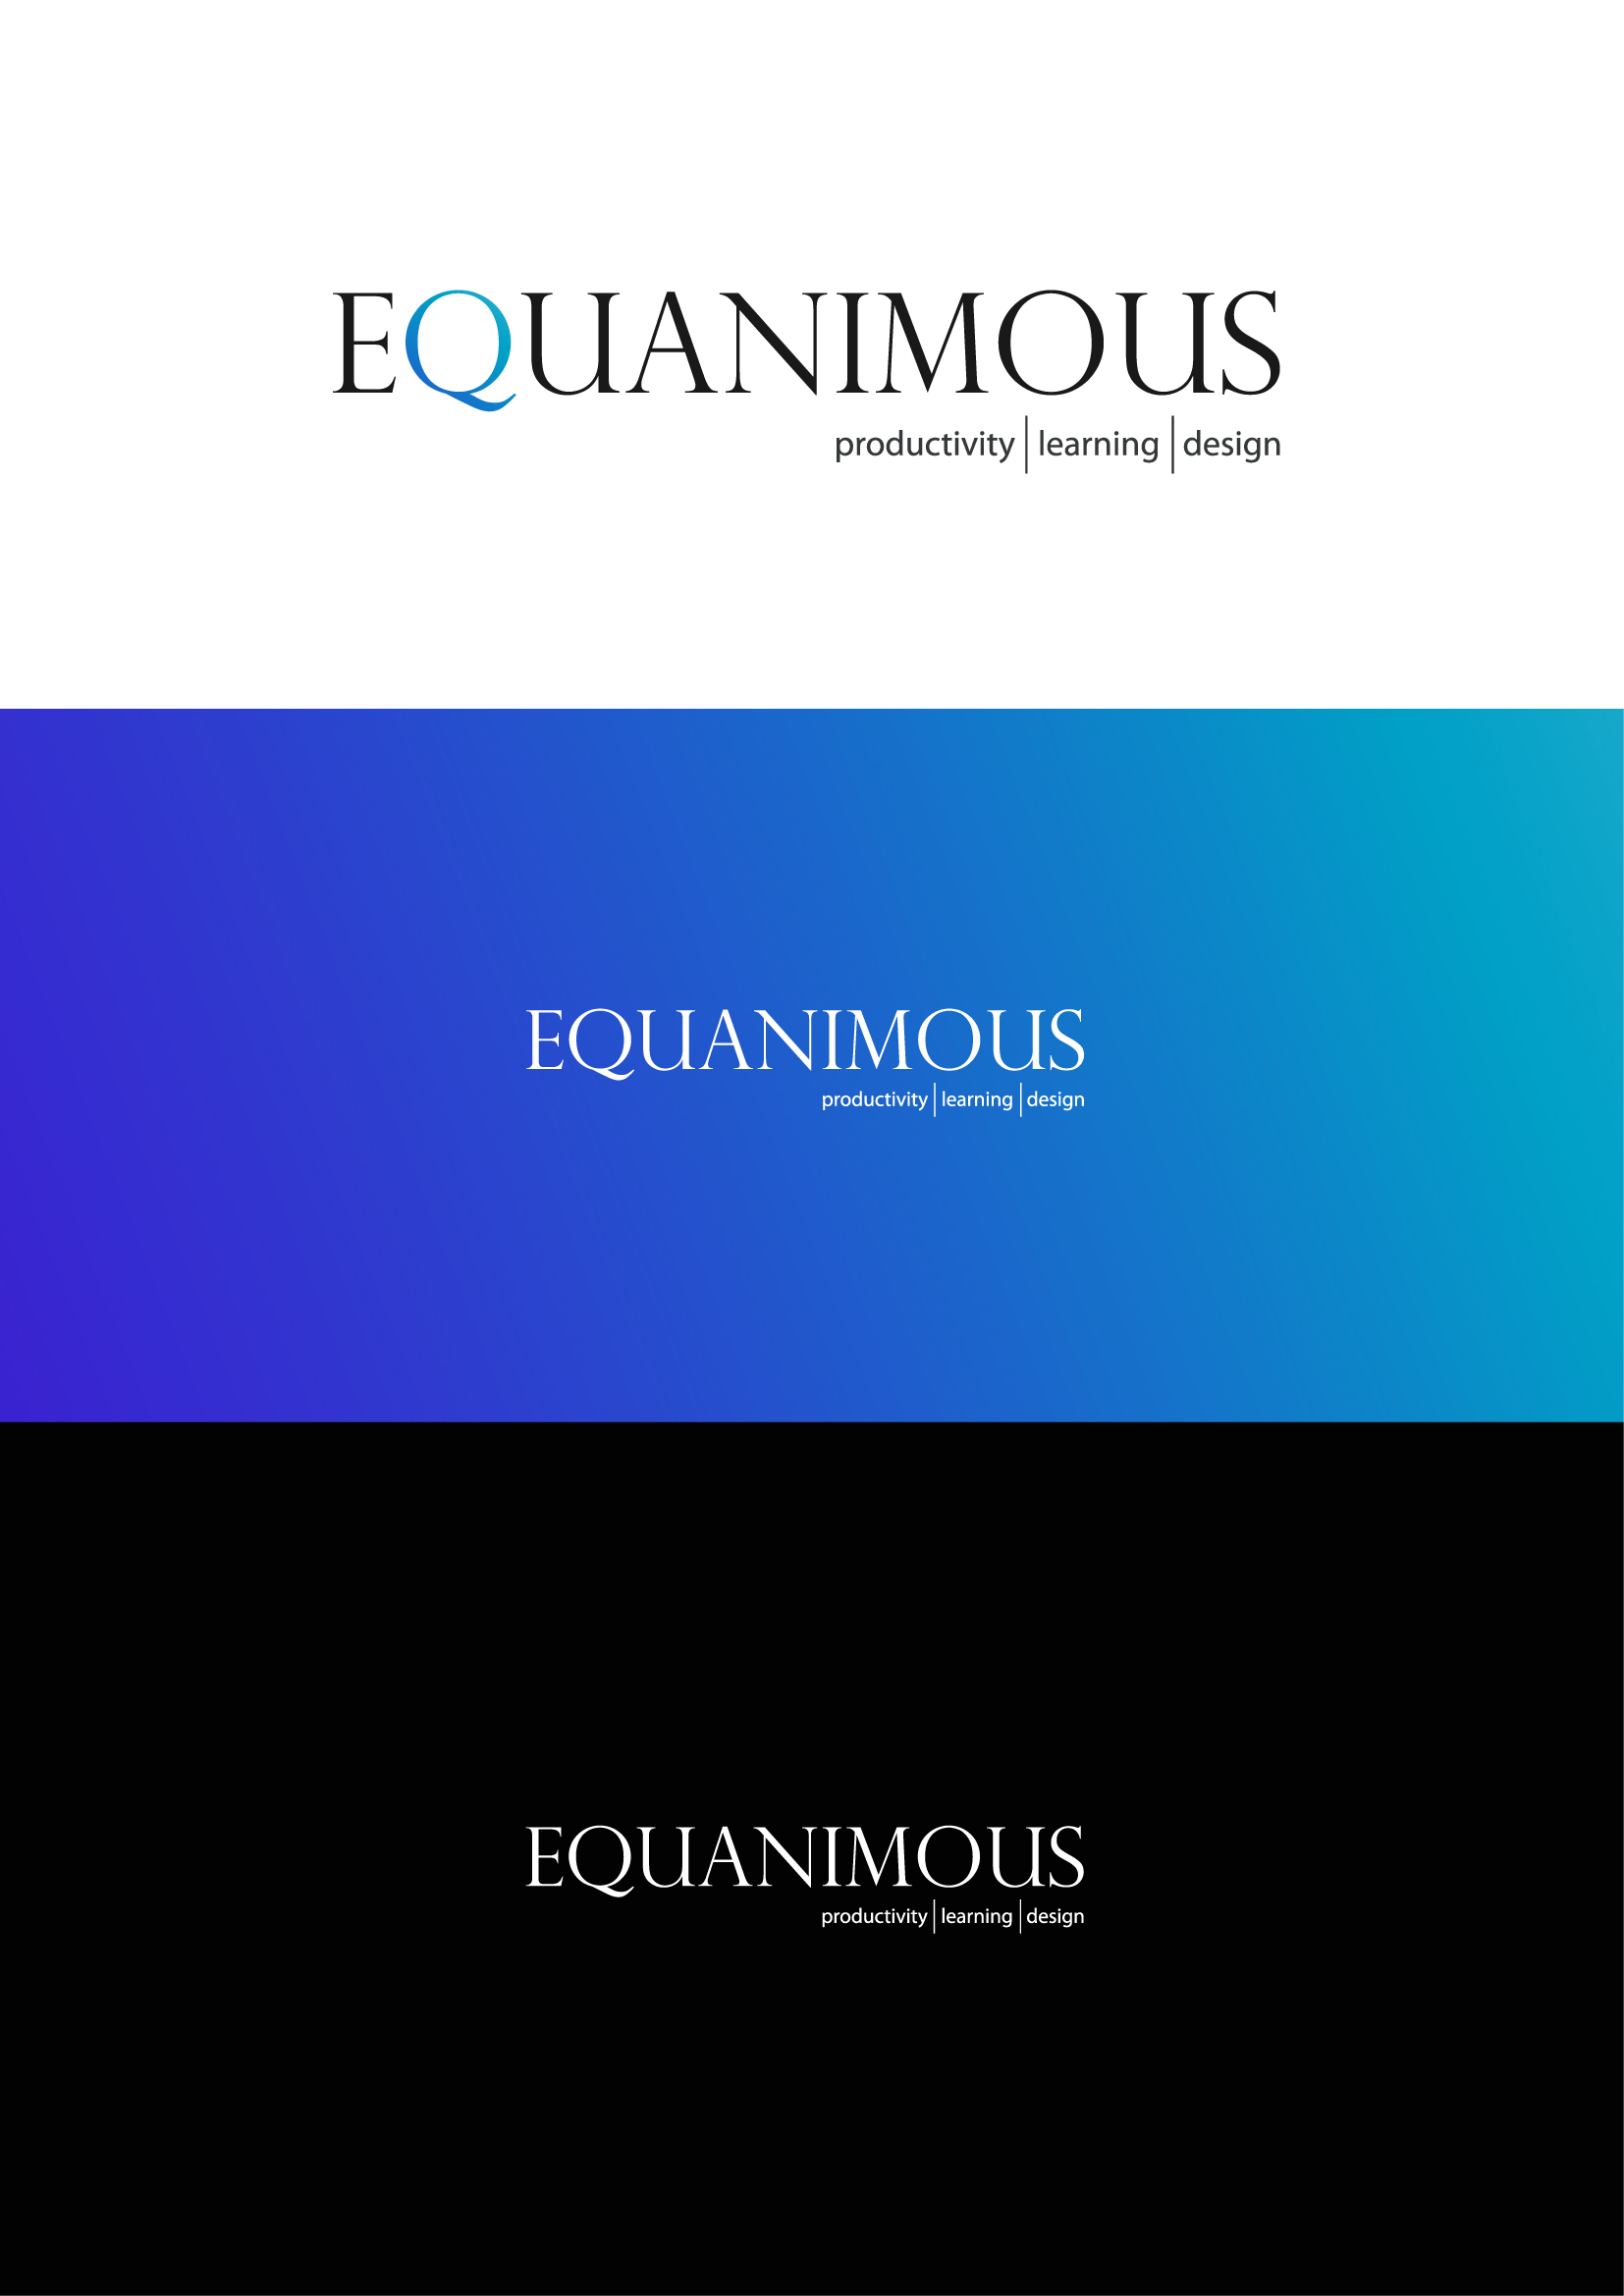 Logo Design by Osi Indra - Entry No. 505 in the Logo Design Contest Logo Design : EQUANIMOUS : Productivity | Learning | Design.